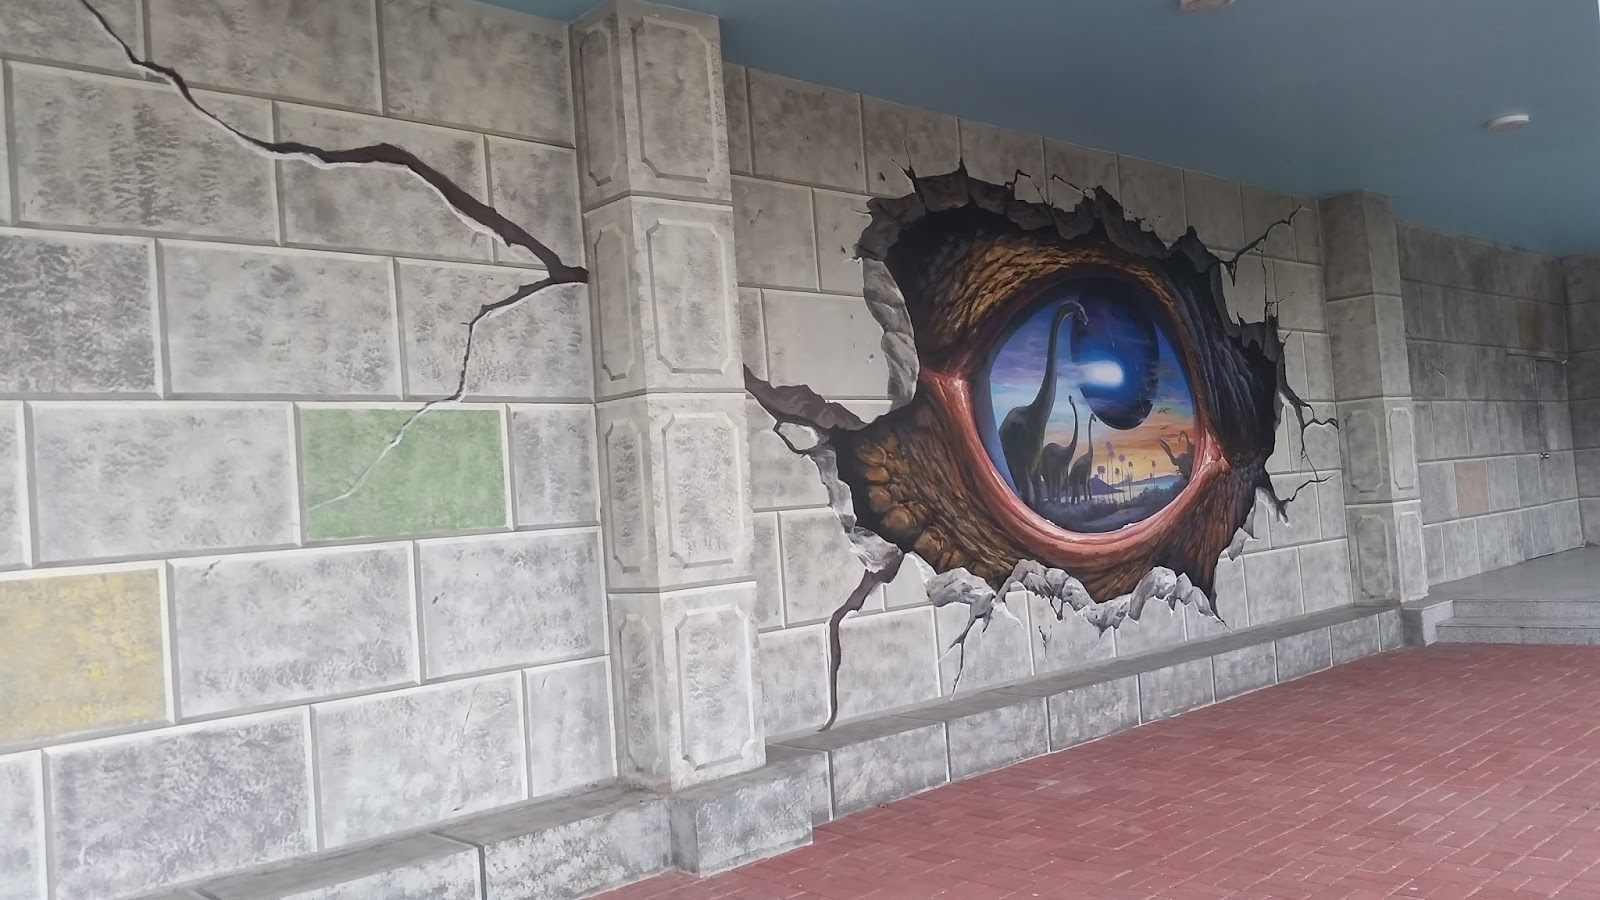 Well Known 3D Wall Art Illusions In Finding Bonggamom: Art That's Educational And Fun: Art In Island (View 13 of 15)